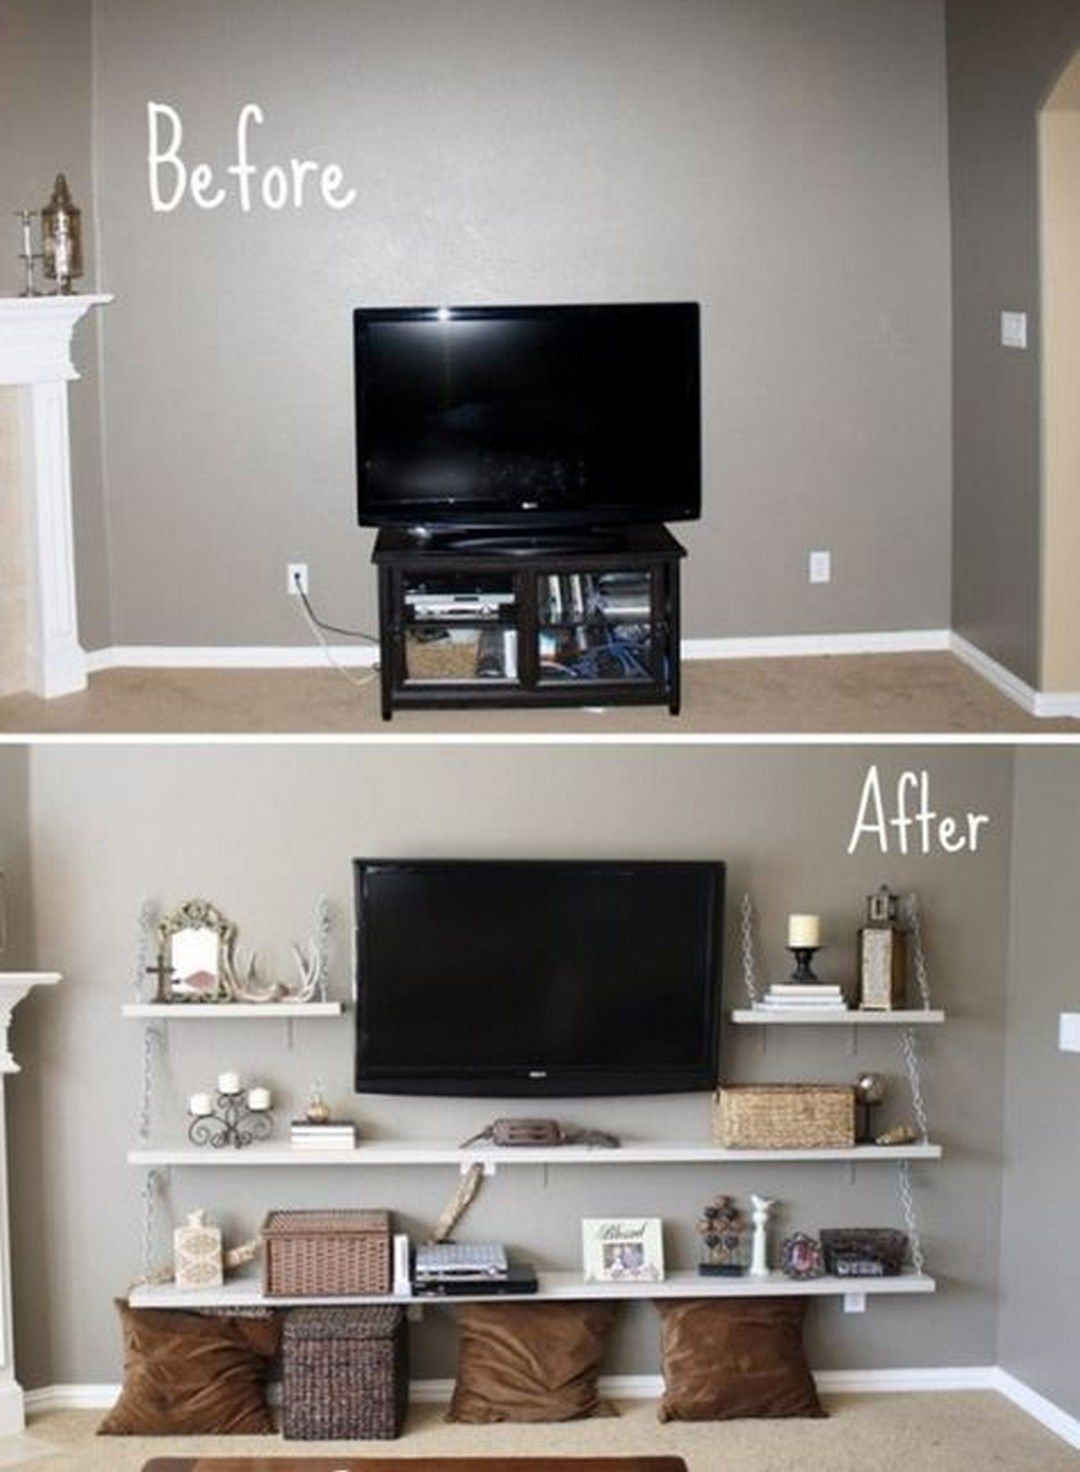 An Idea IF We Replace The Fat Back TV In The Living Room And Skip The  Fireplace Idea.or An Idea For The Basement Tv Area Once It Is Finished.  Apartment ...